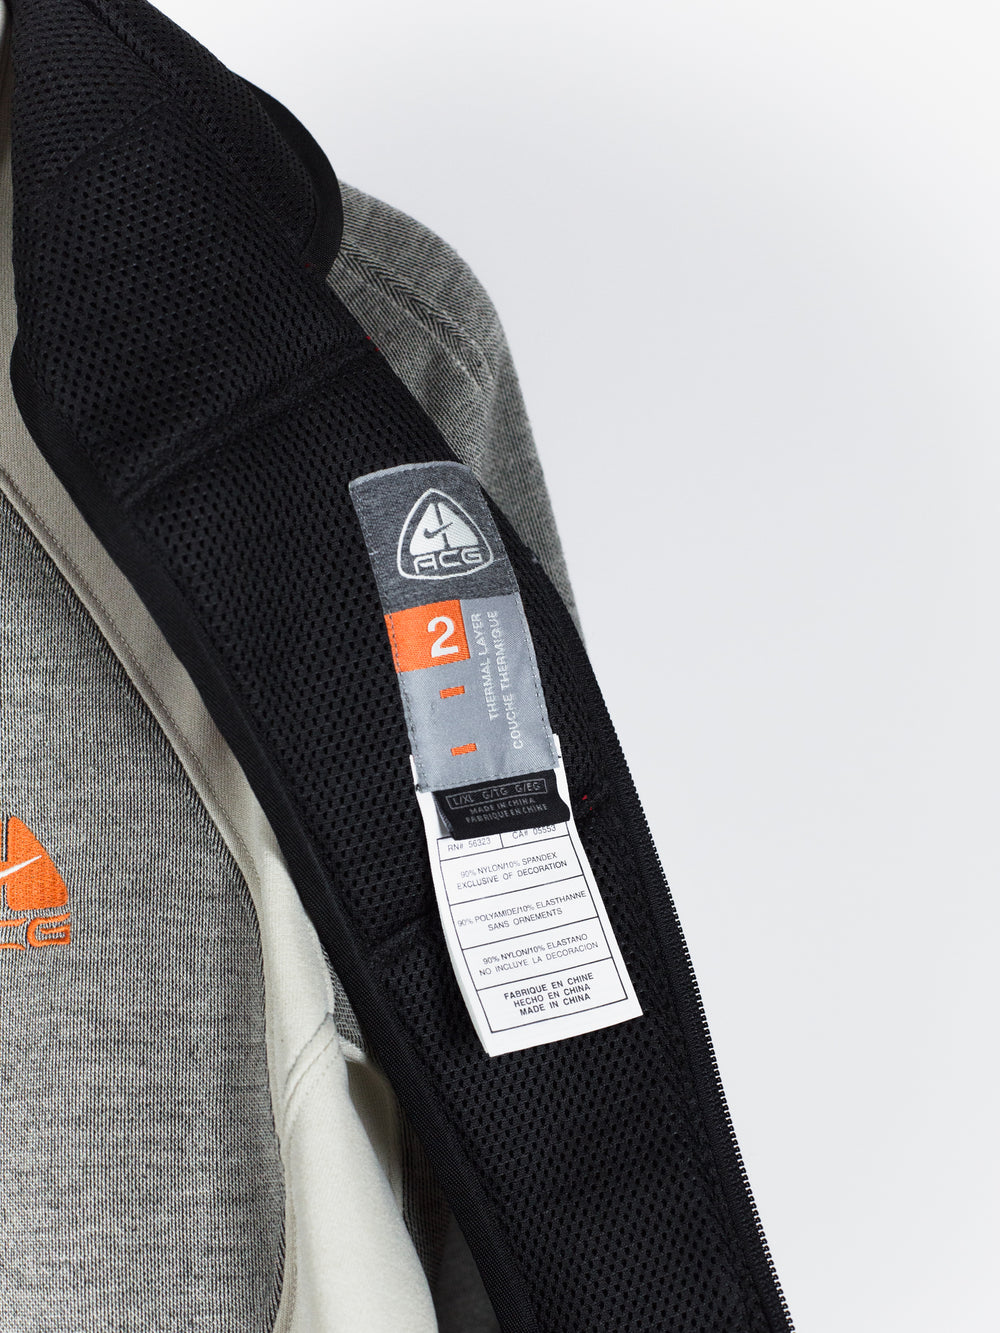 Nike ACG 2005 SoftSwitch Comm Vest